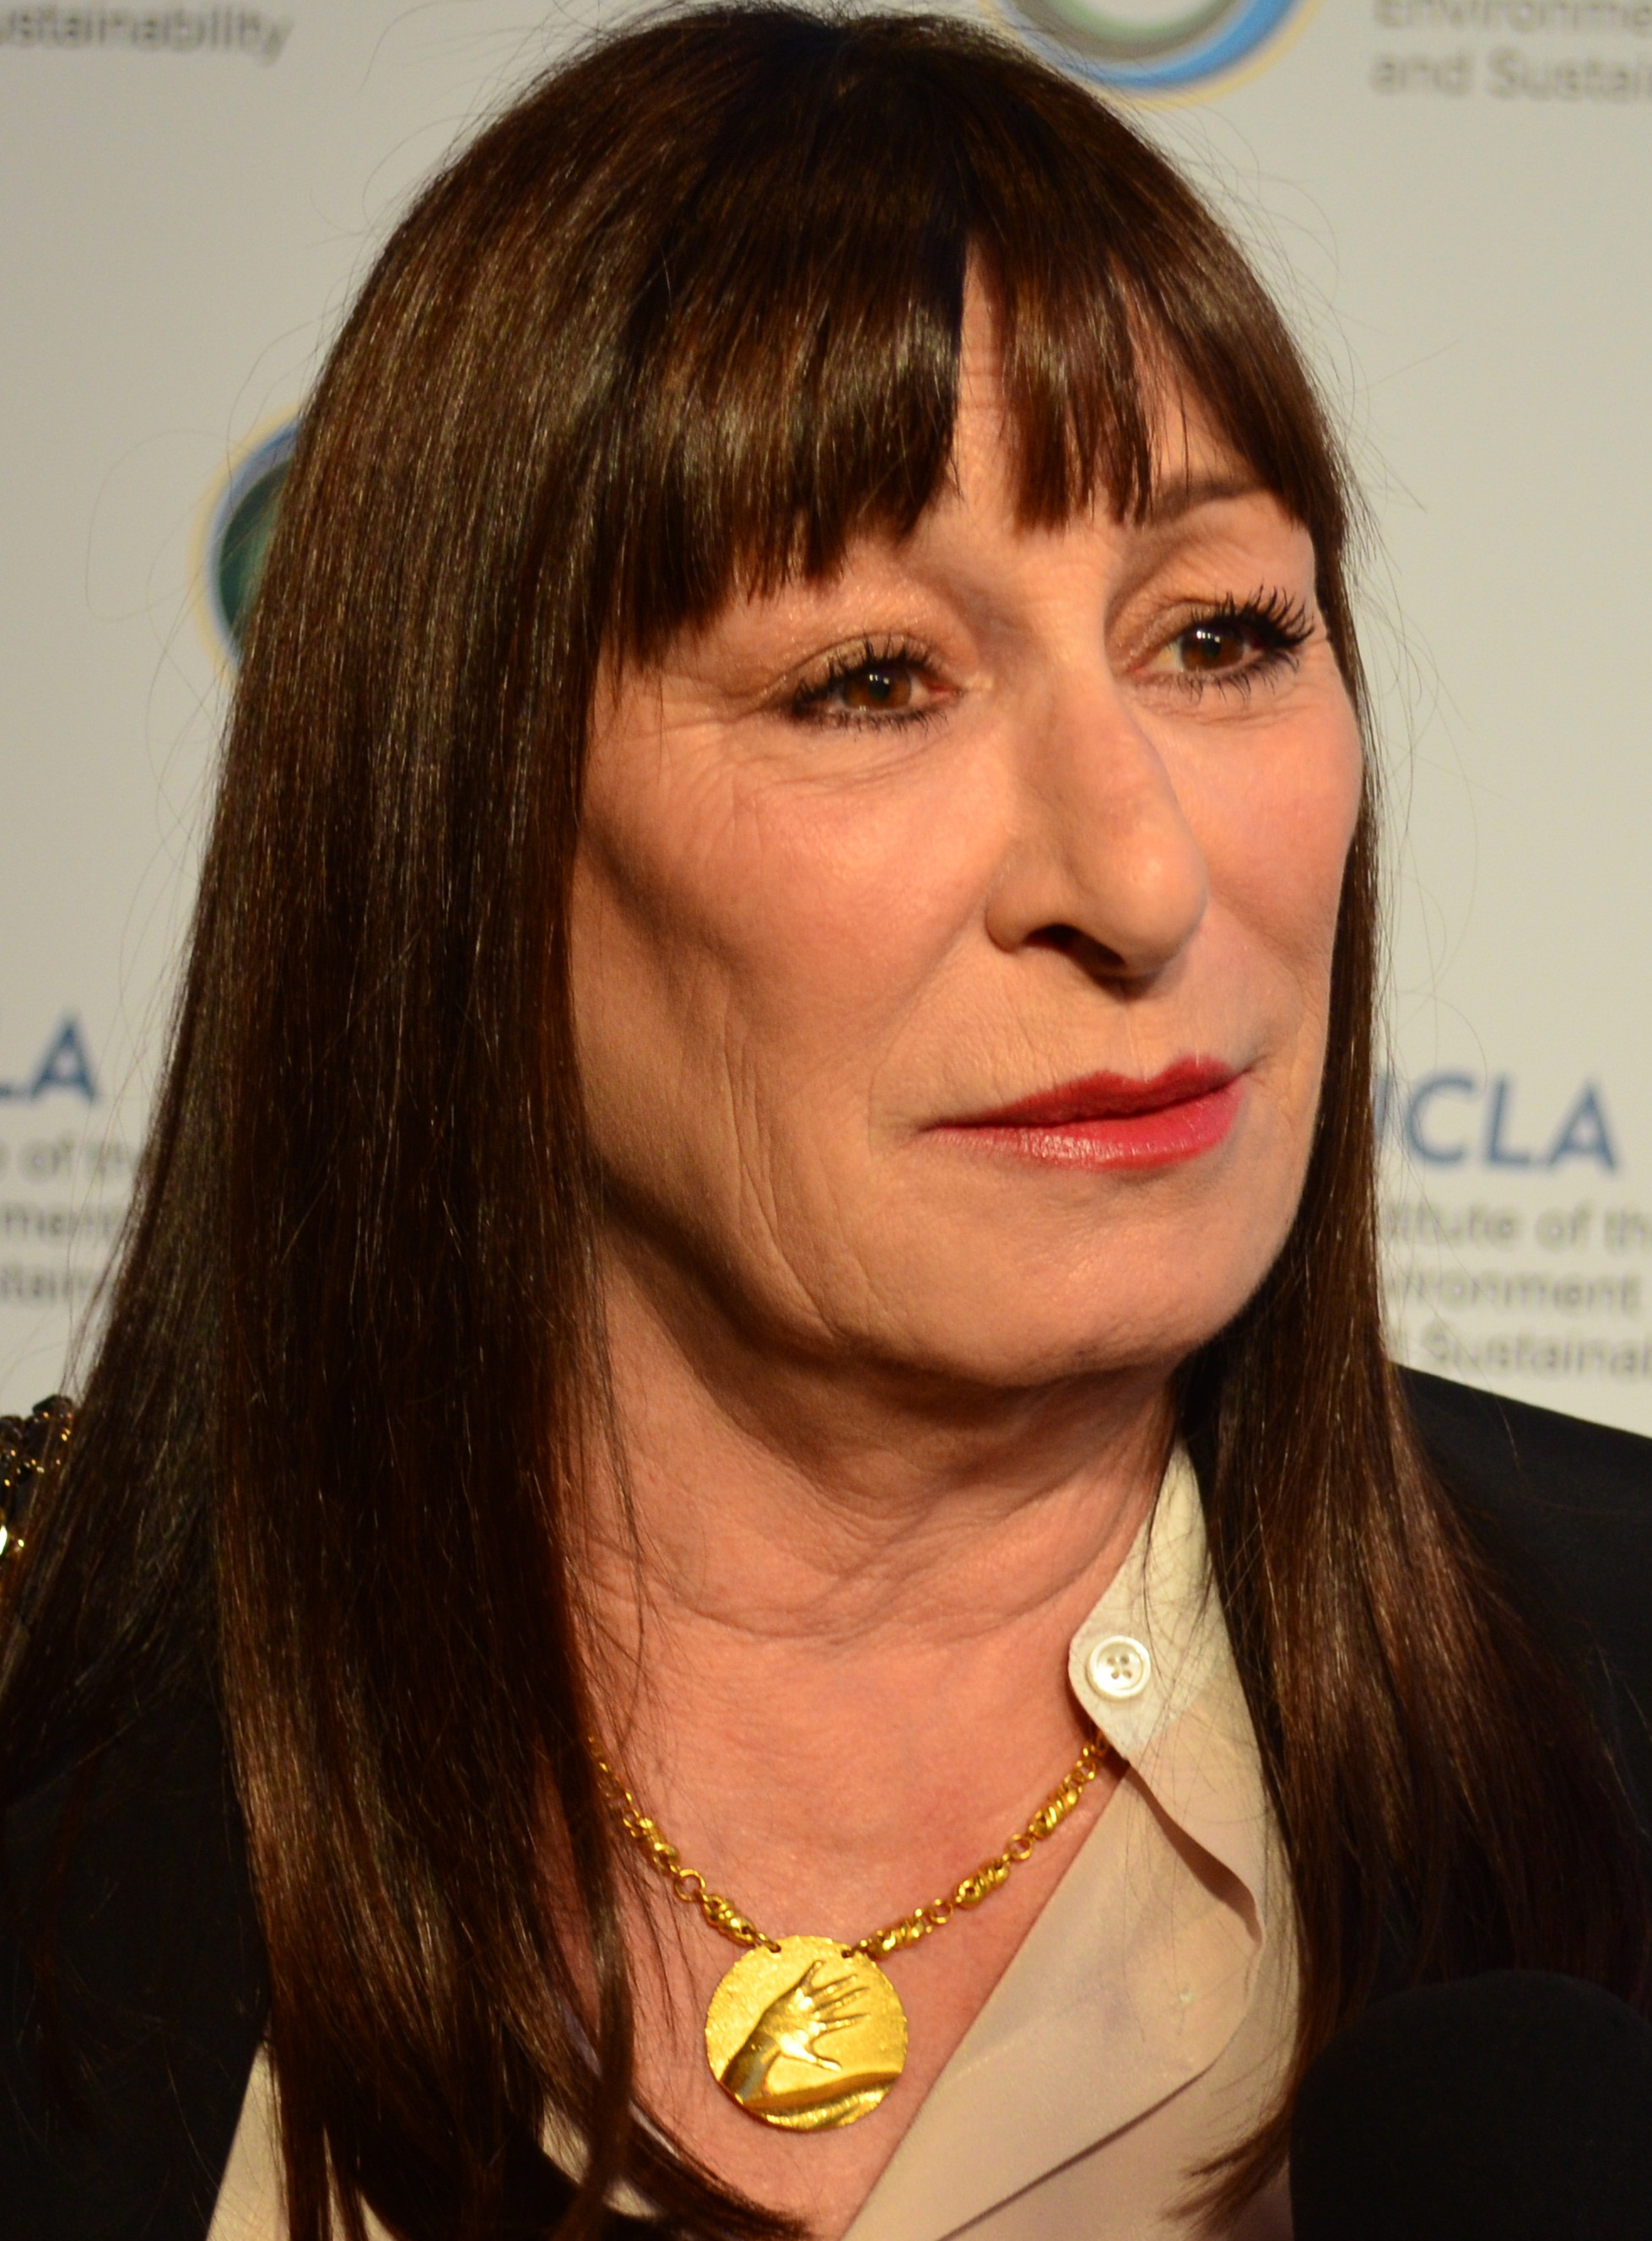 Depiction of Anjelica Huston